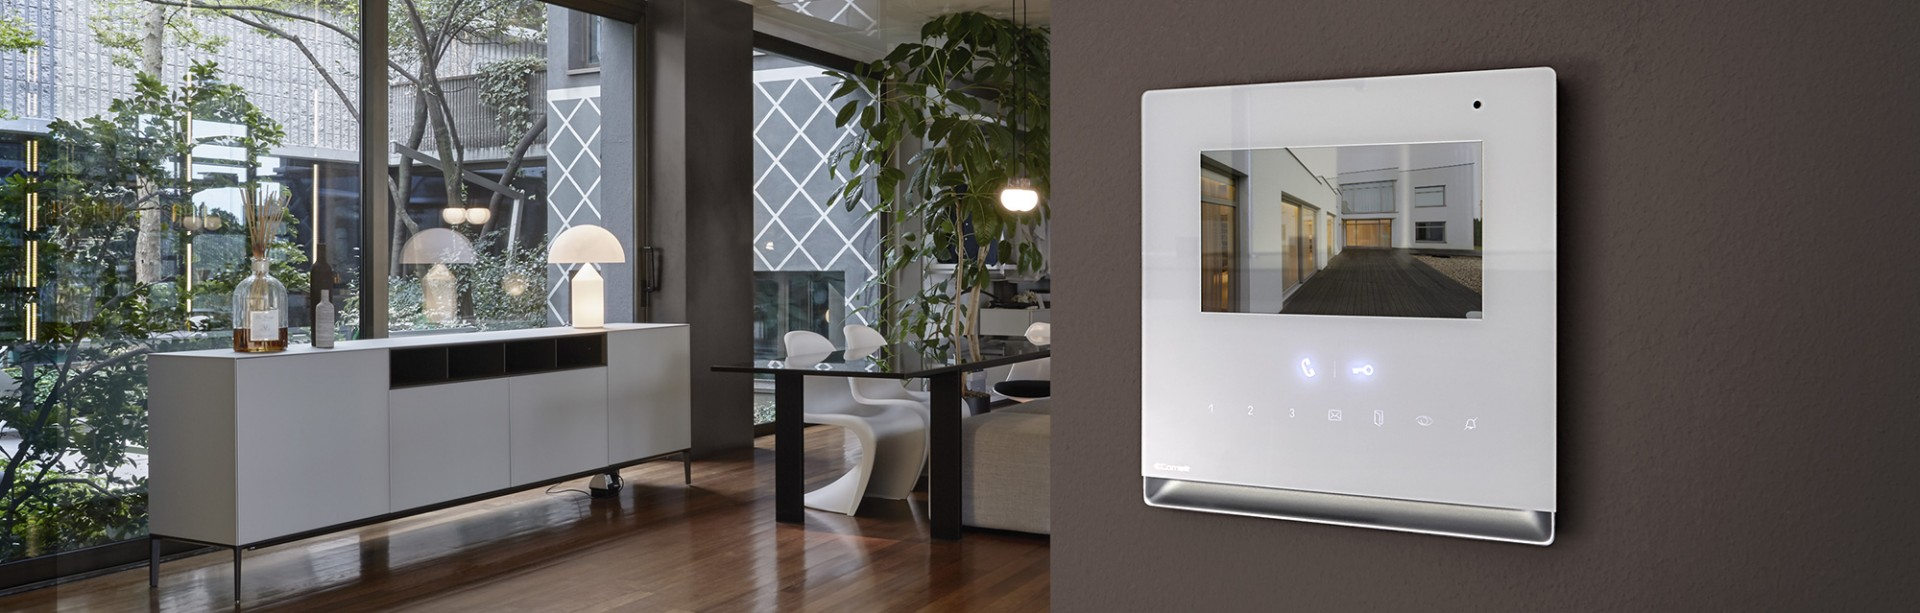 Comelit Home Door Entry Monitors Design And Technology Comelit